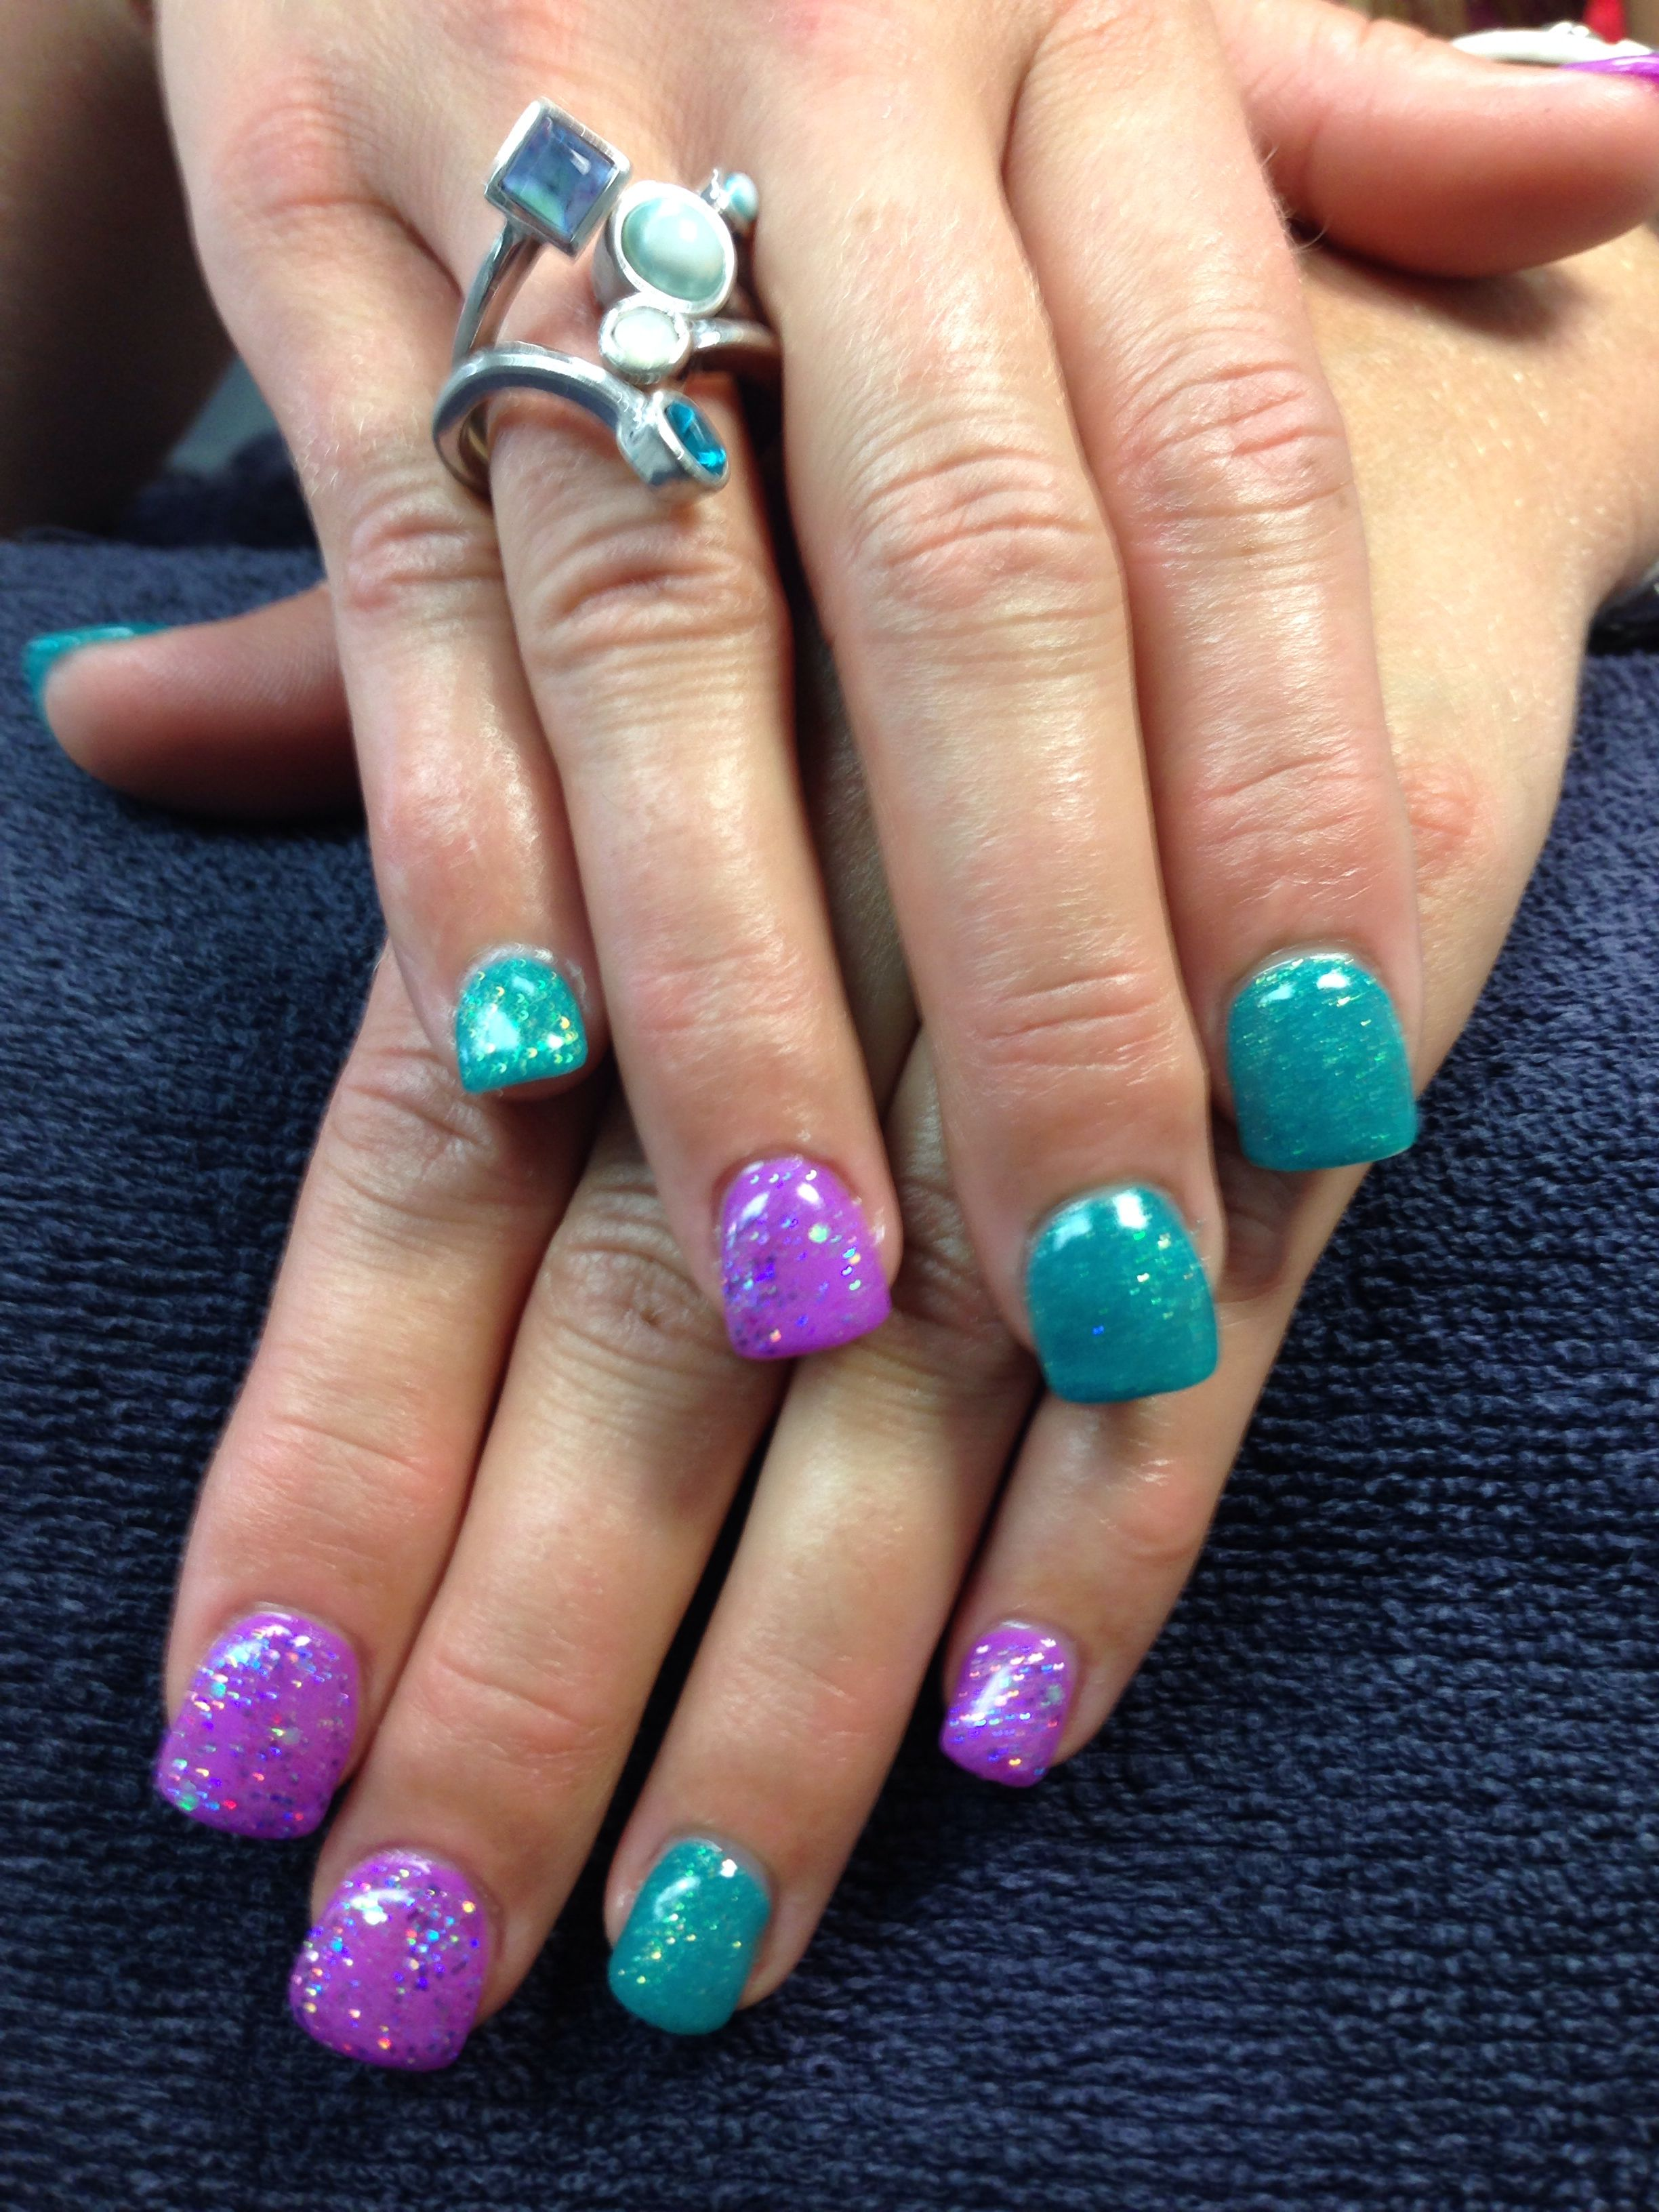 danae's nails. purple and teal